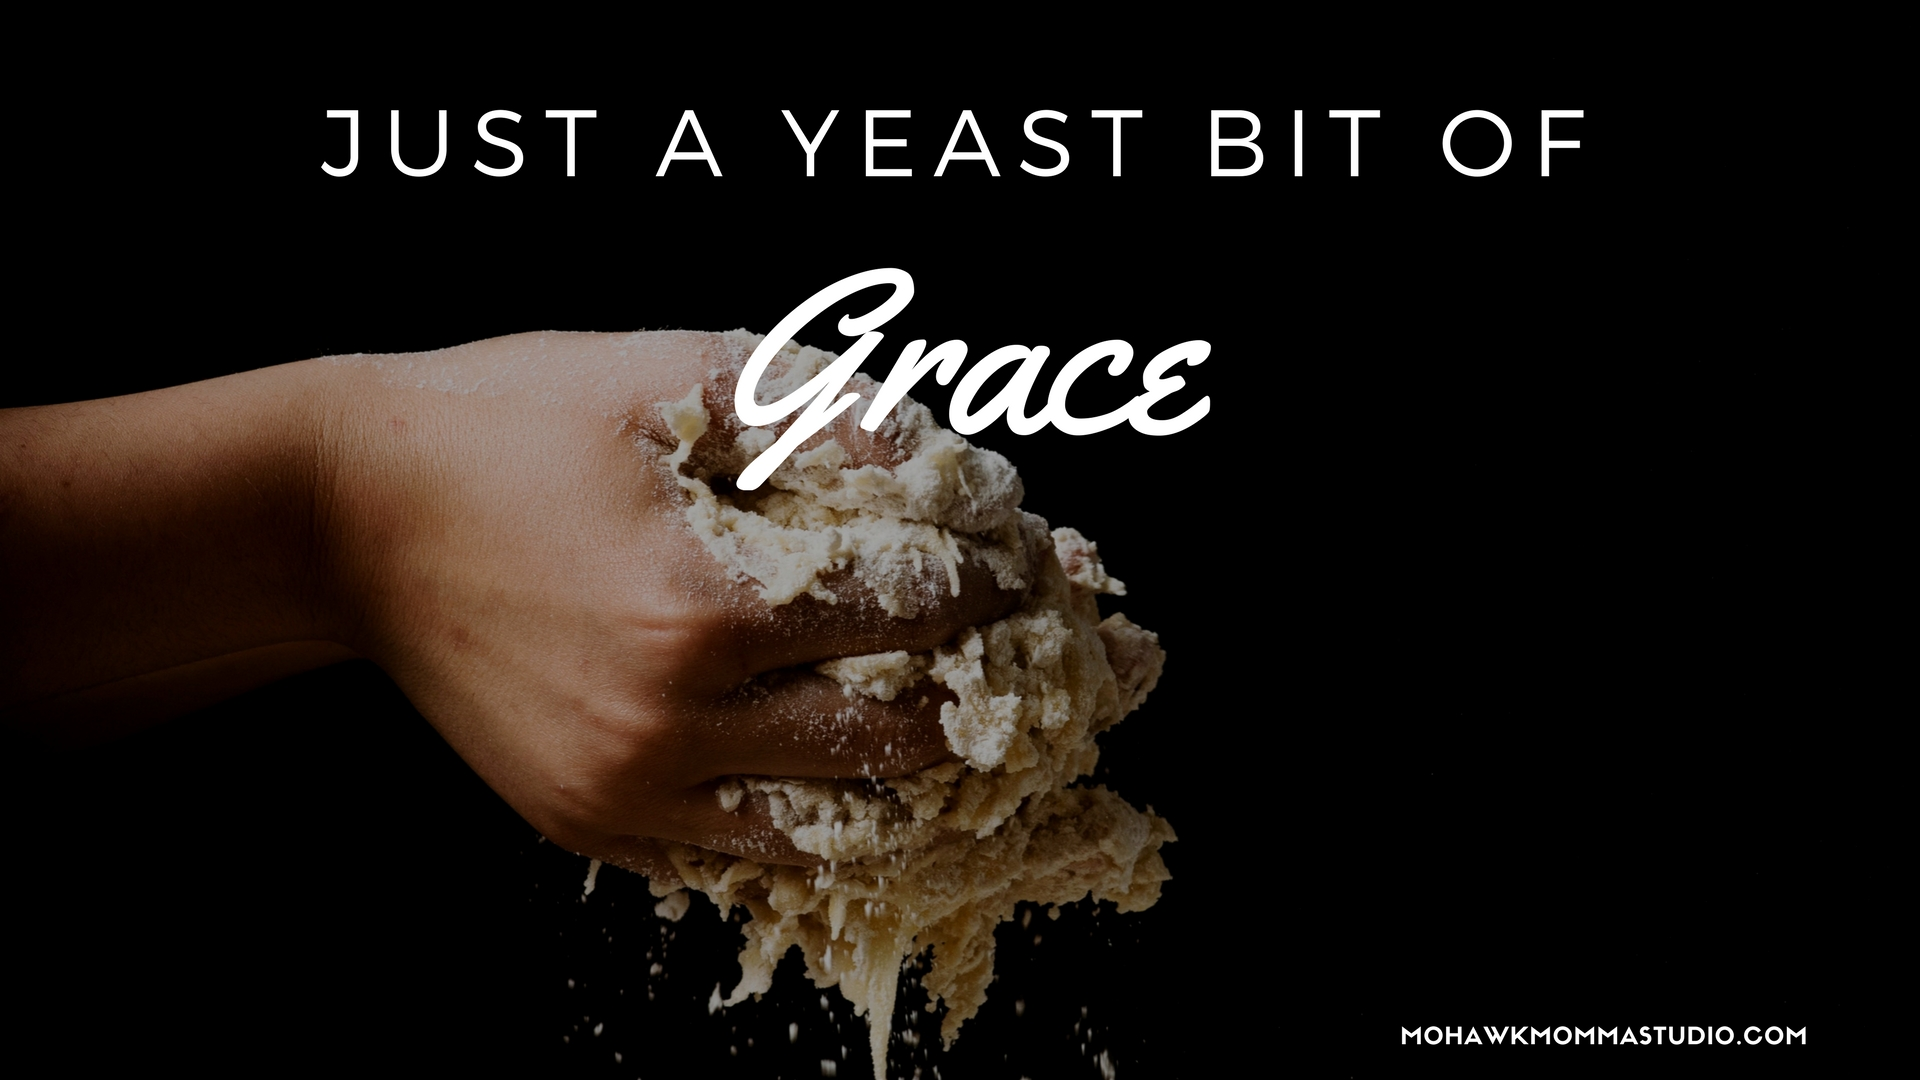 A Yeast Bit of Grace